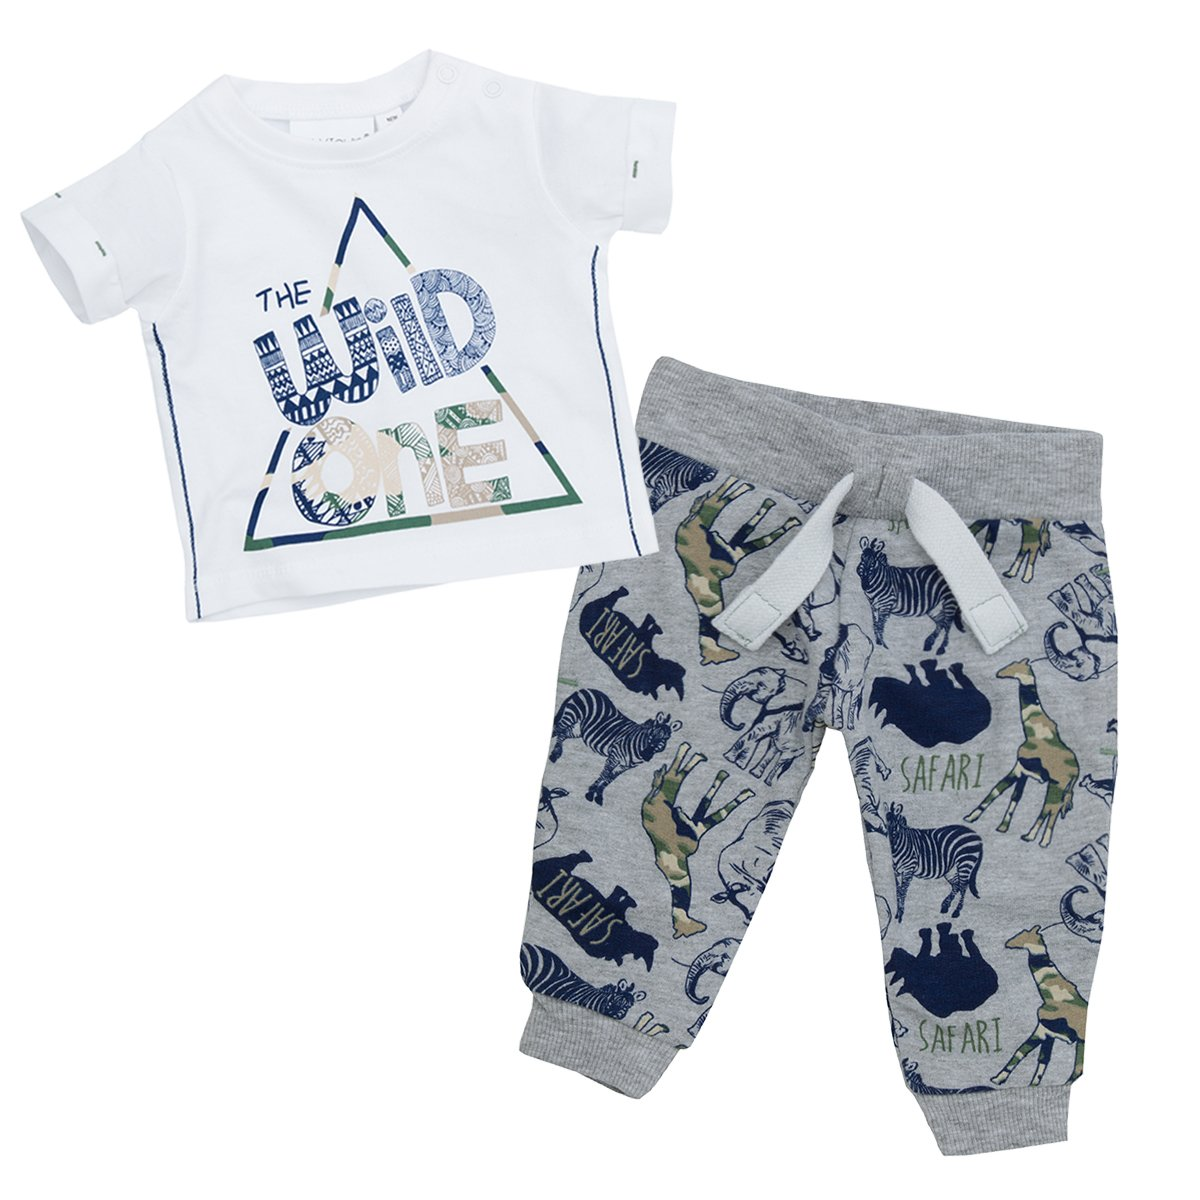 12-18 month, White 0.5-3 year HEHEM 2PC Toddler Kids Baby Boy Letter Printed T shirt Tops+Striped Shorts Outfits Baby Boys Summer Clothes